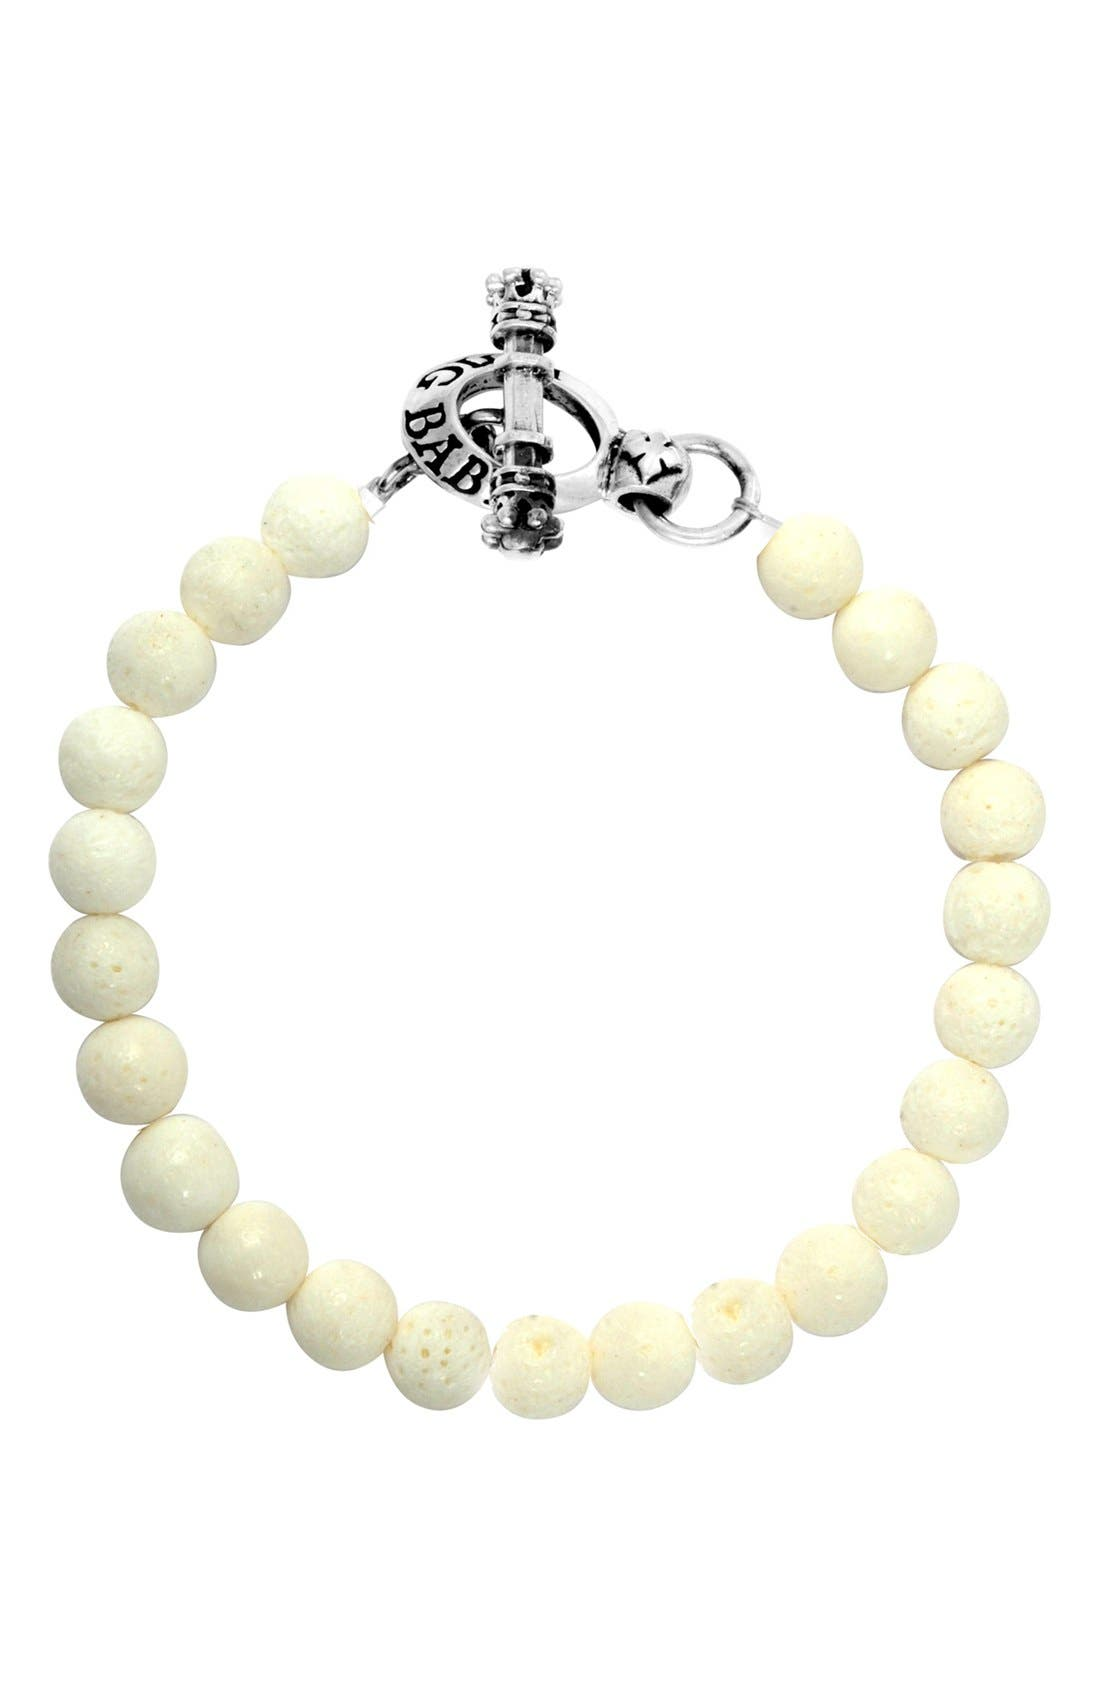 Coral Bead Bracelet,                             Main thumbnail 1, color,                             Silver/ White